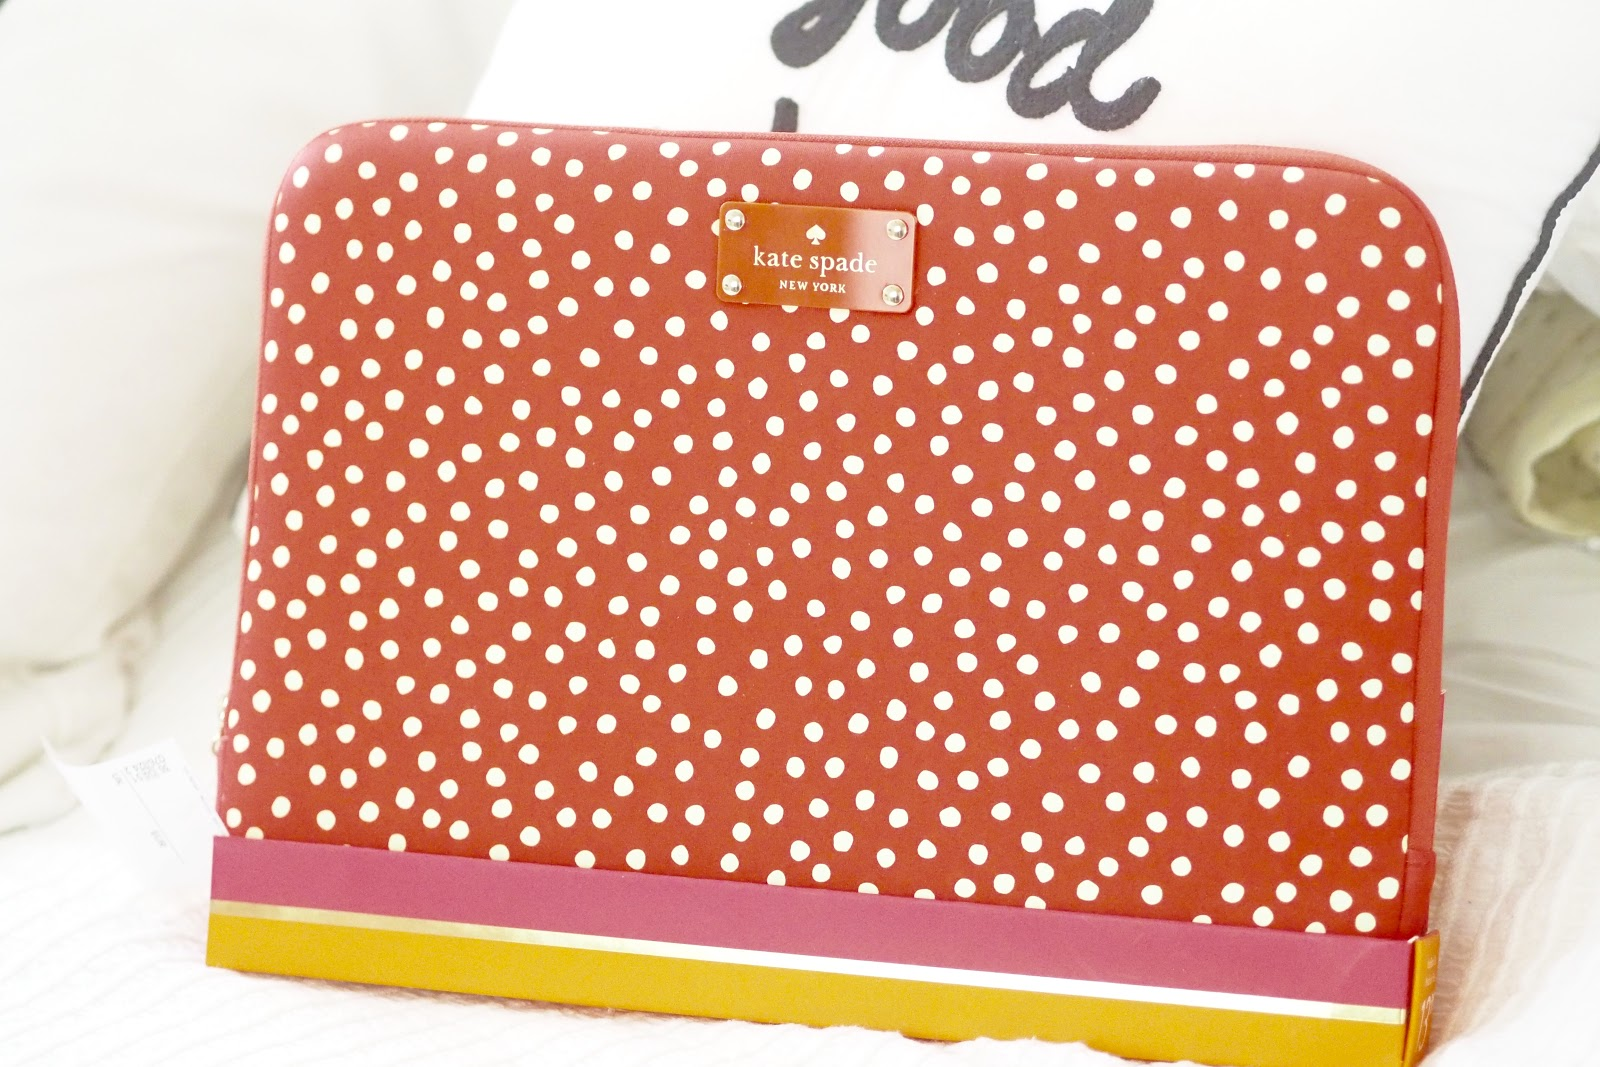 kate spade macbook case